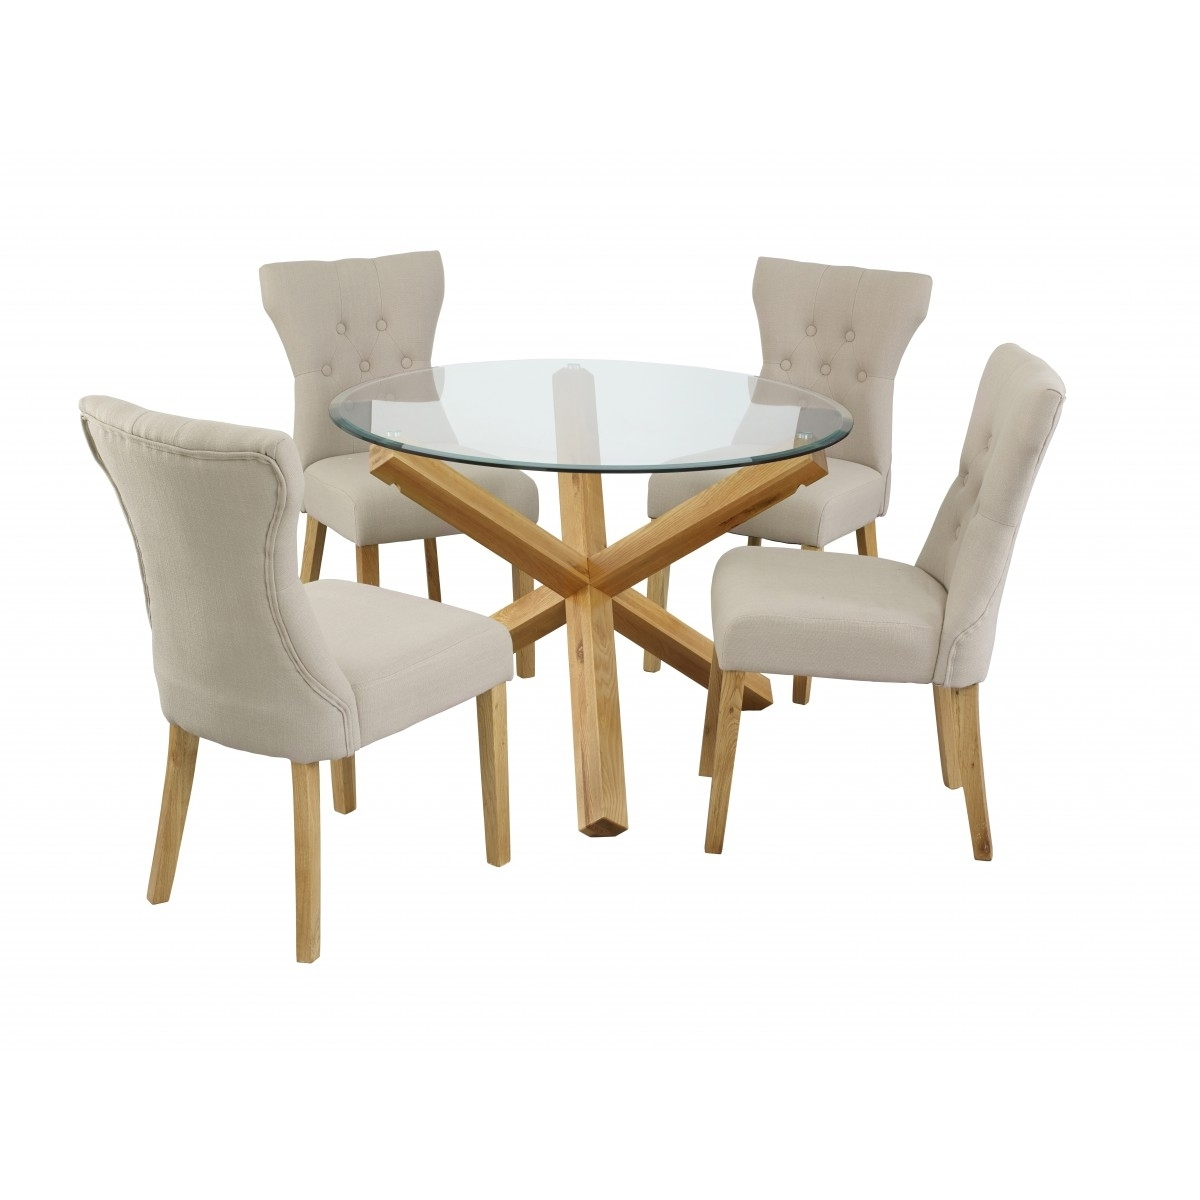 Preferred Lpd Oporto Medium Round Glass Dining Table – Oak – Home Done Within Oak Glass Dining Tables (View 21 of 25)